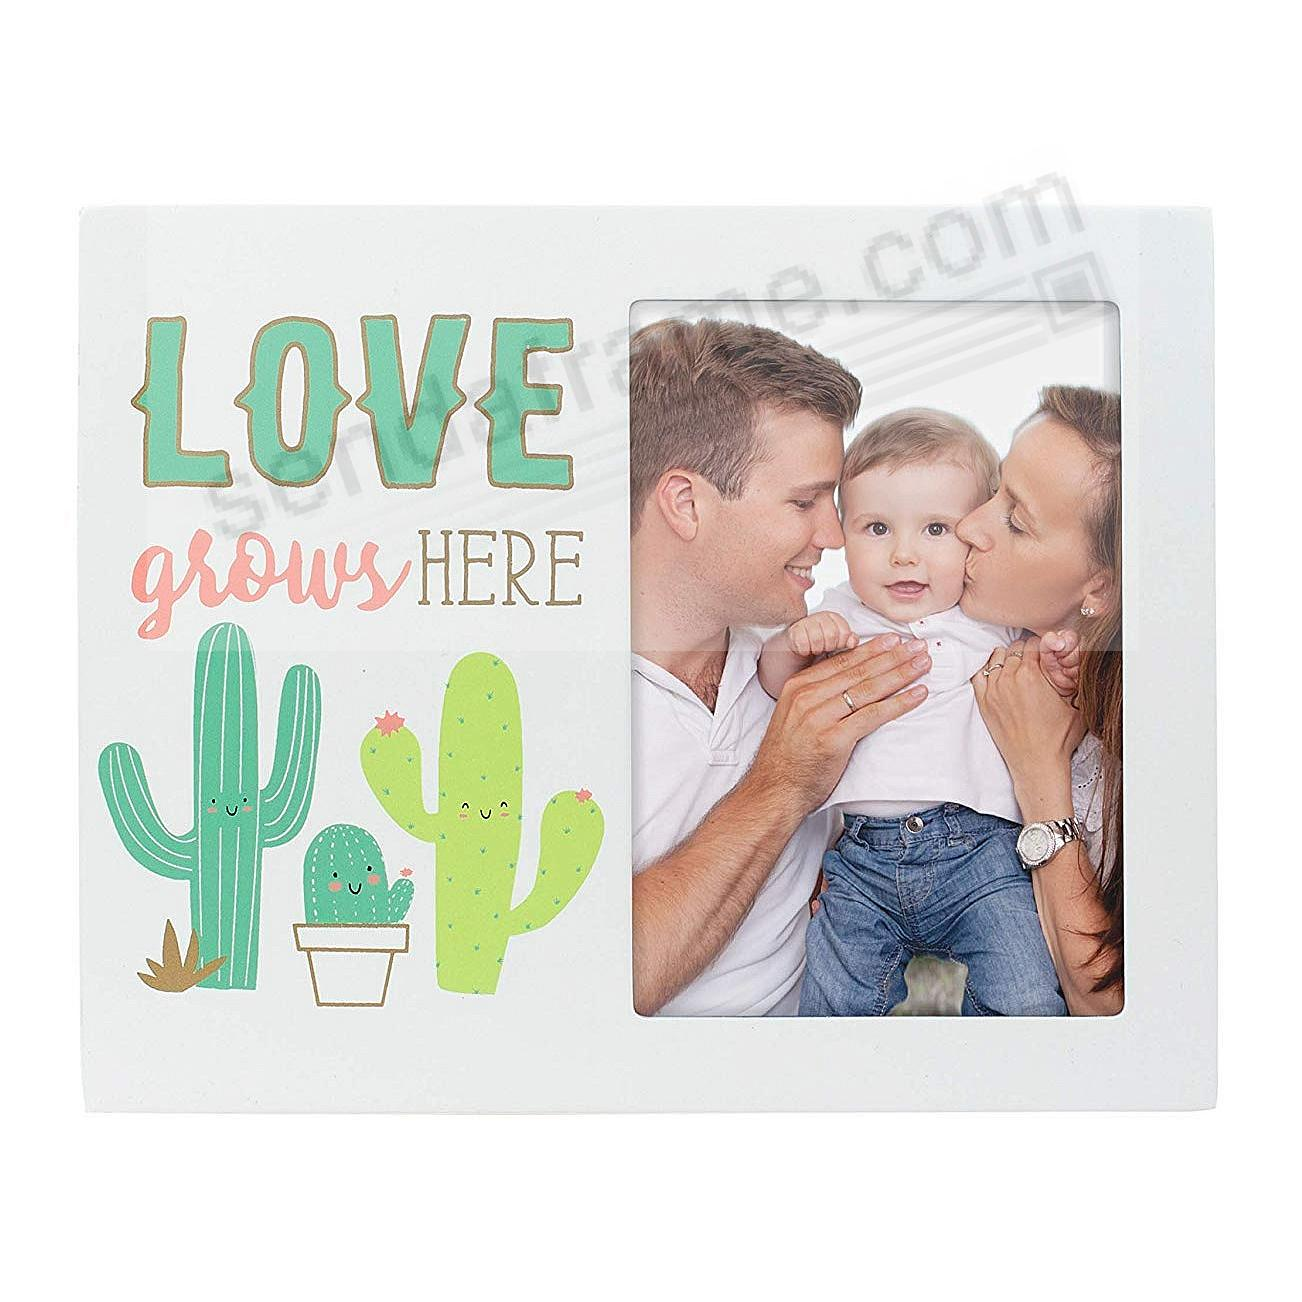 LOVE GROWS HERE keepsake frame by Pearhead®